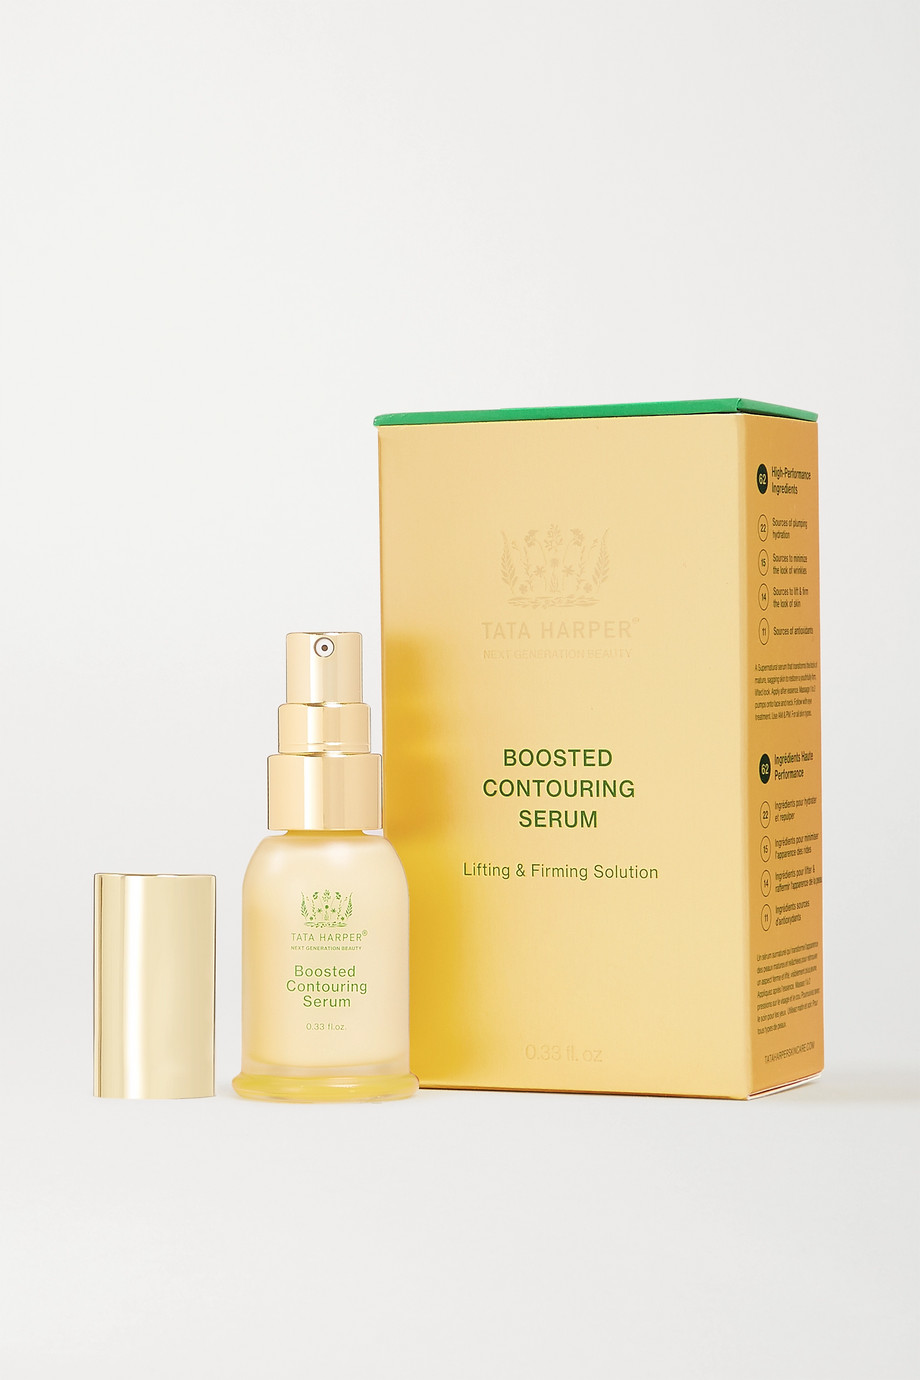 TATA HARPER Boosted Contouring Serum, 10ml